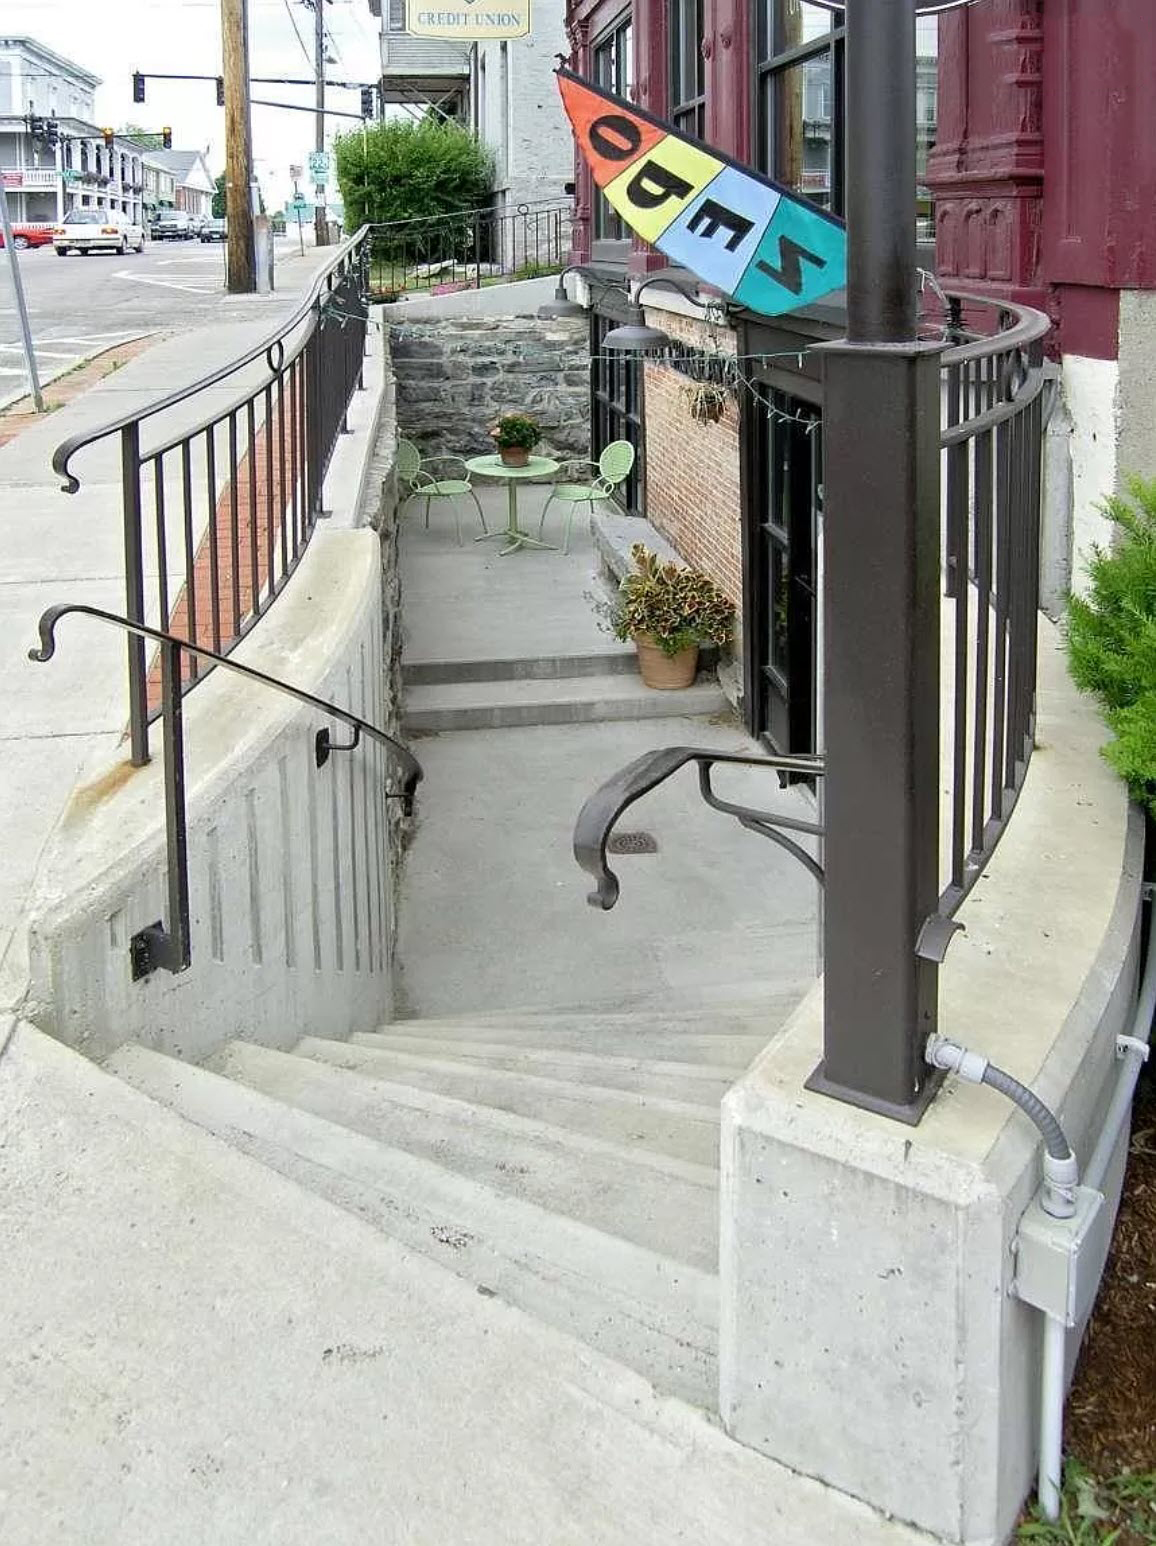 Another view of exterior steps to basement level.